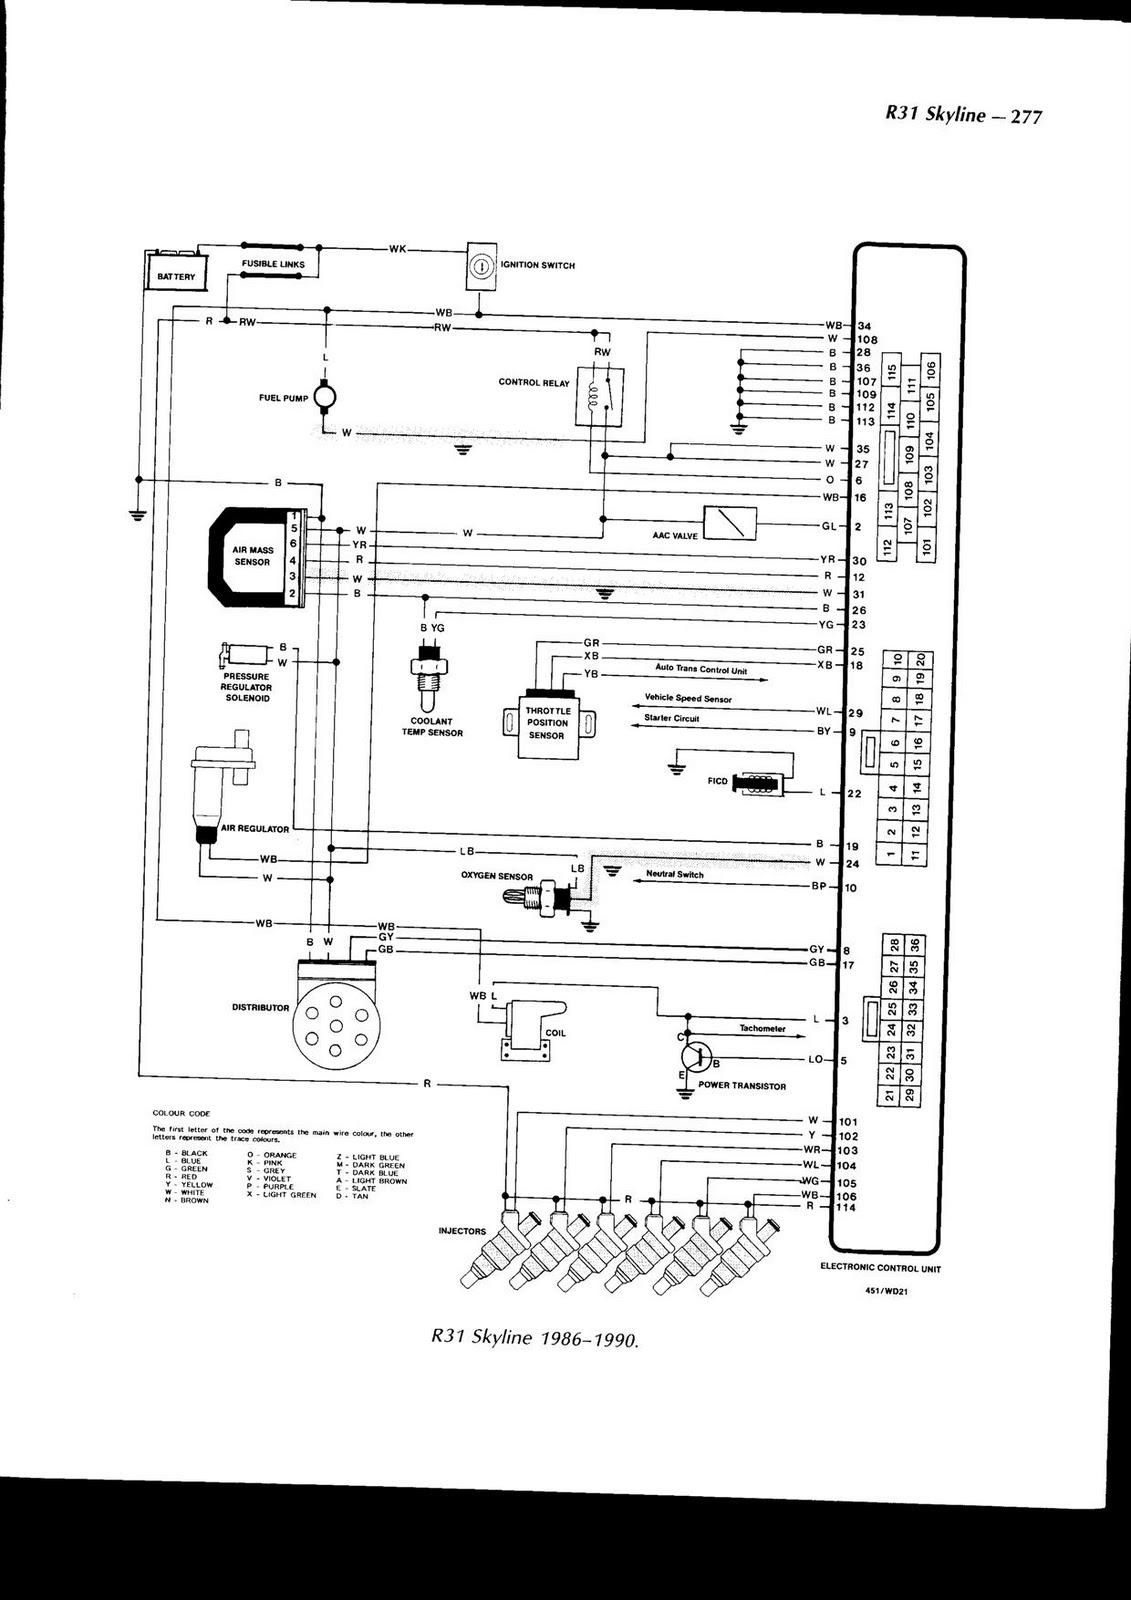 RB30_R31_Wiring_Diagram rb30 wiring diagrams 280zx project vl commodore ecu wiring diagram at edmiracle.co